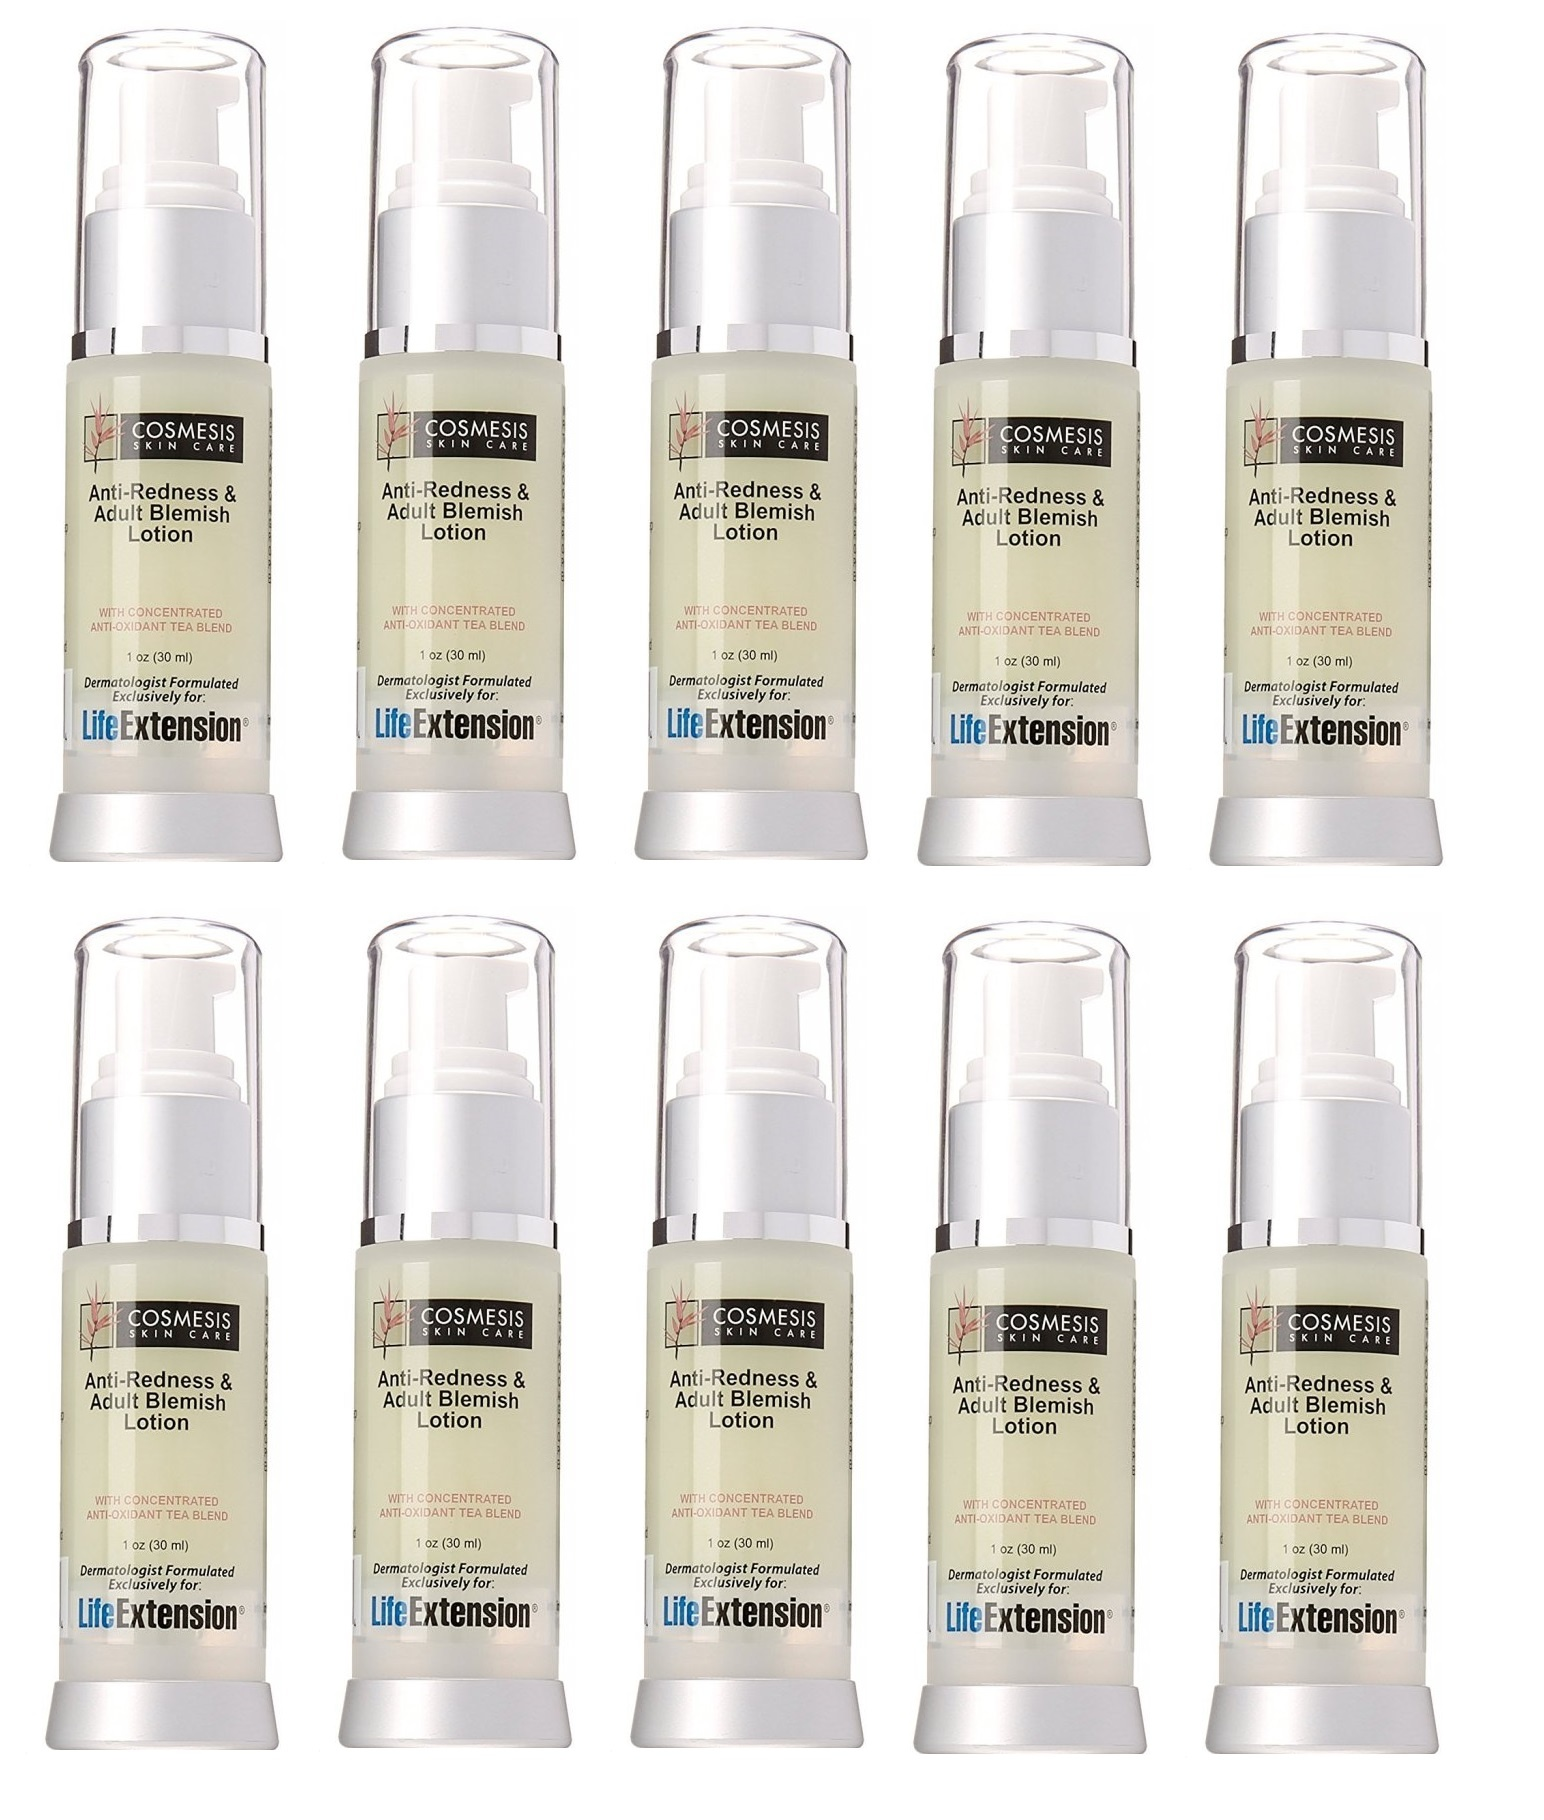 Life Extension Anti-Redness and Blemish Lotion, 1 Oz., 10-pack